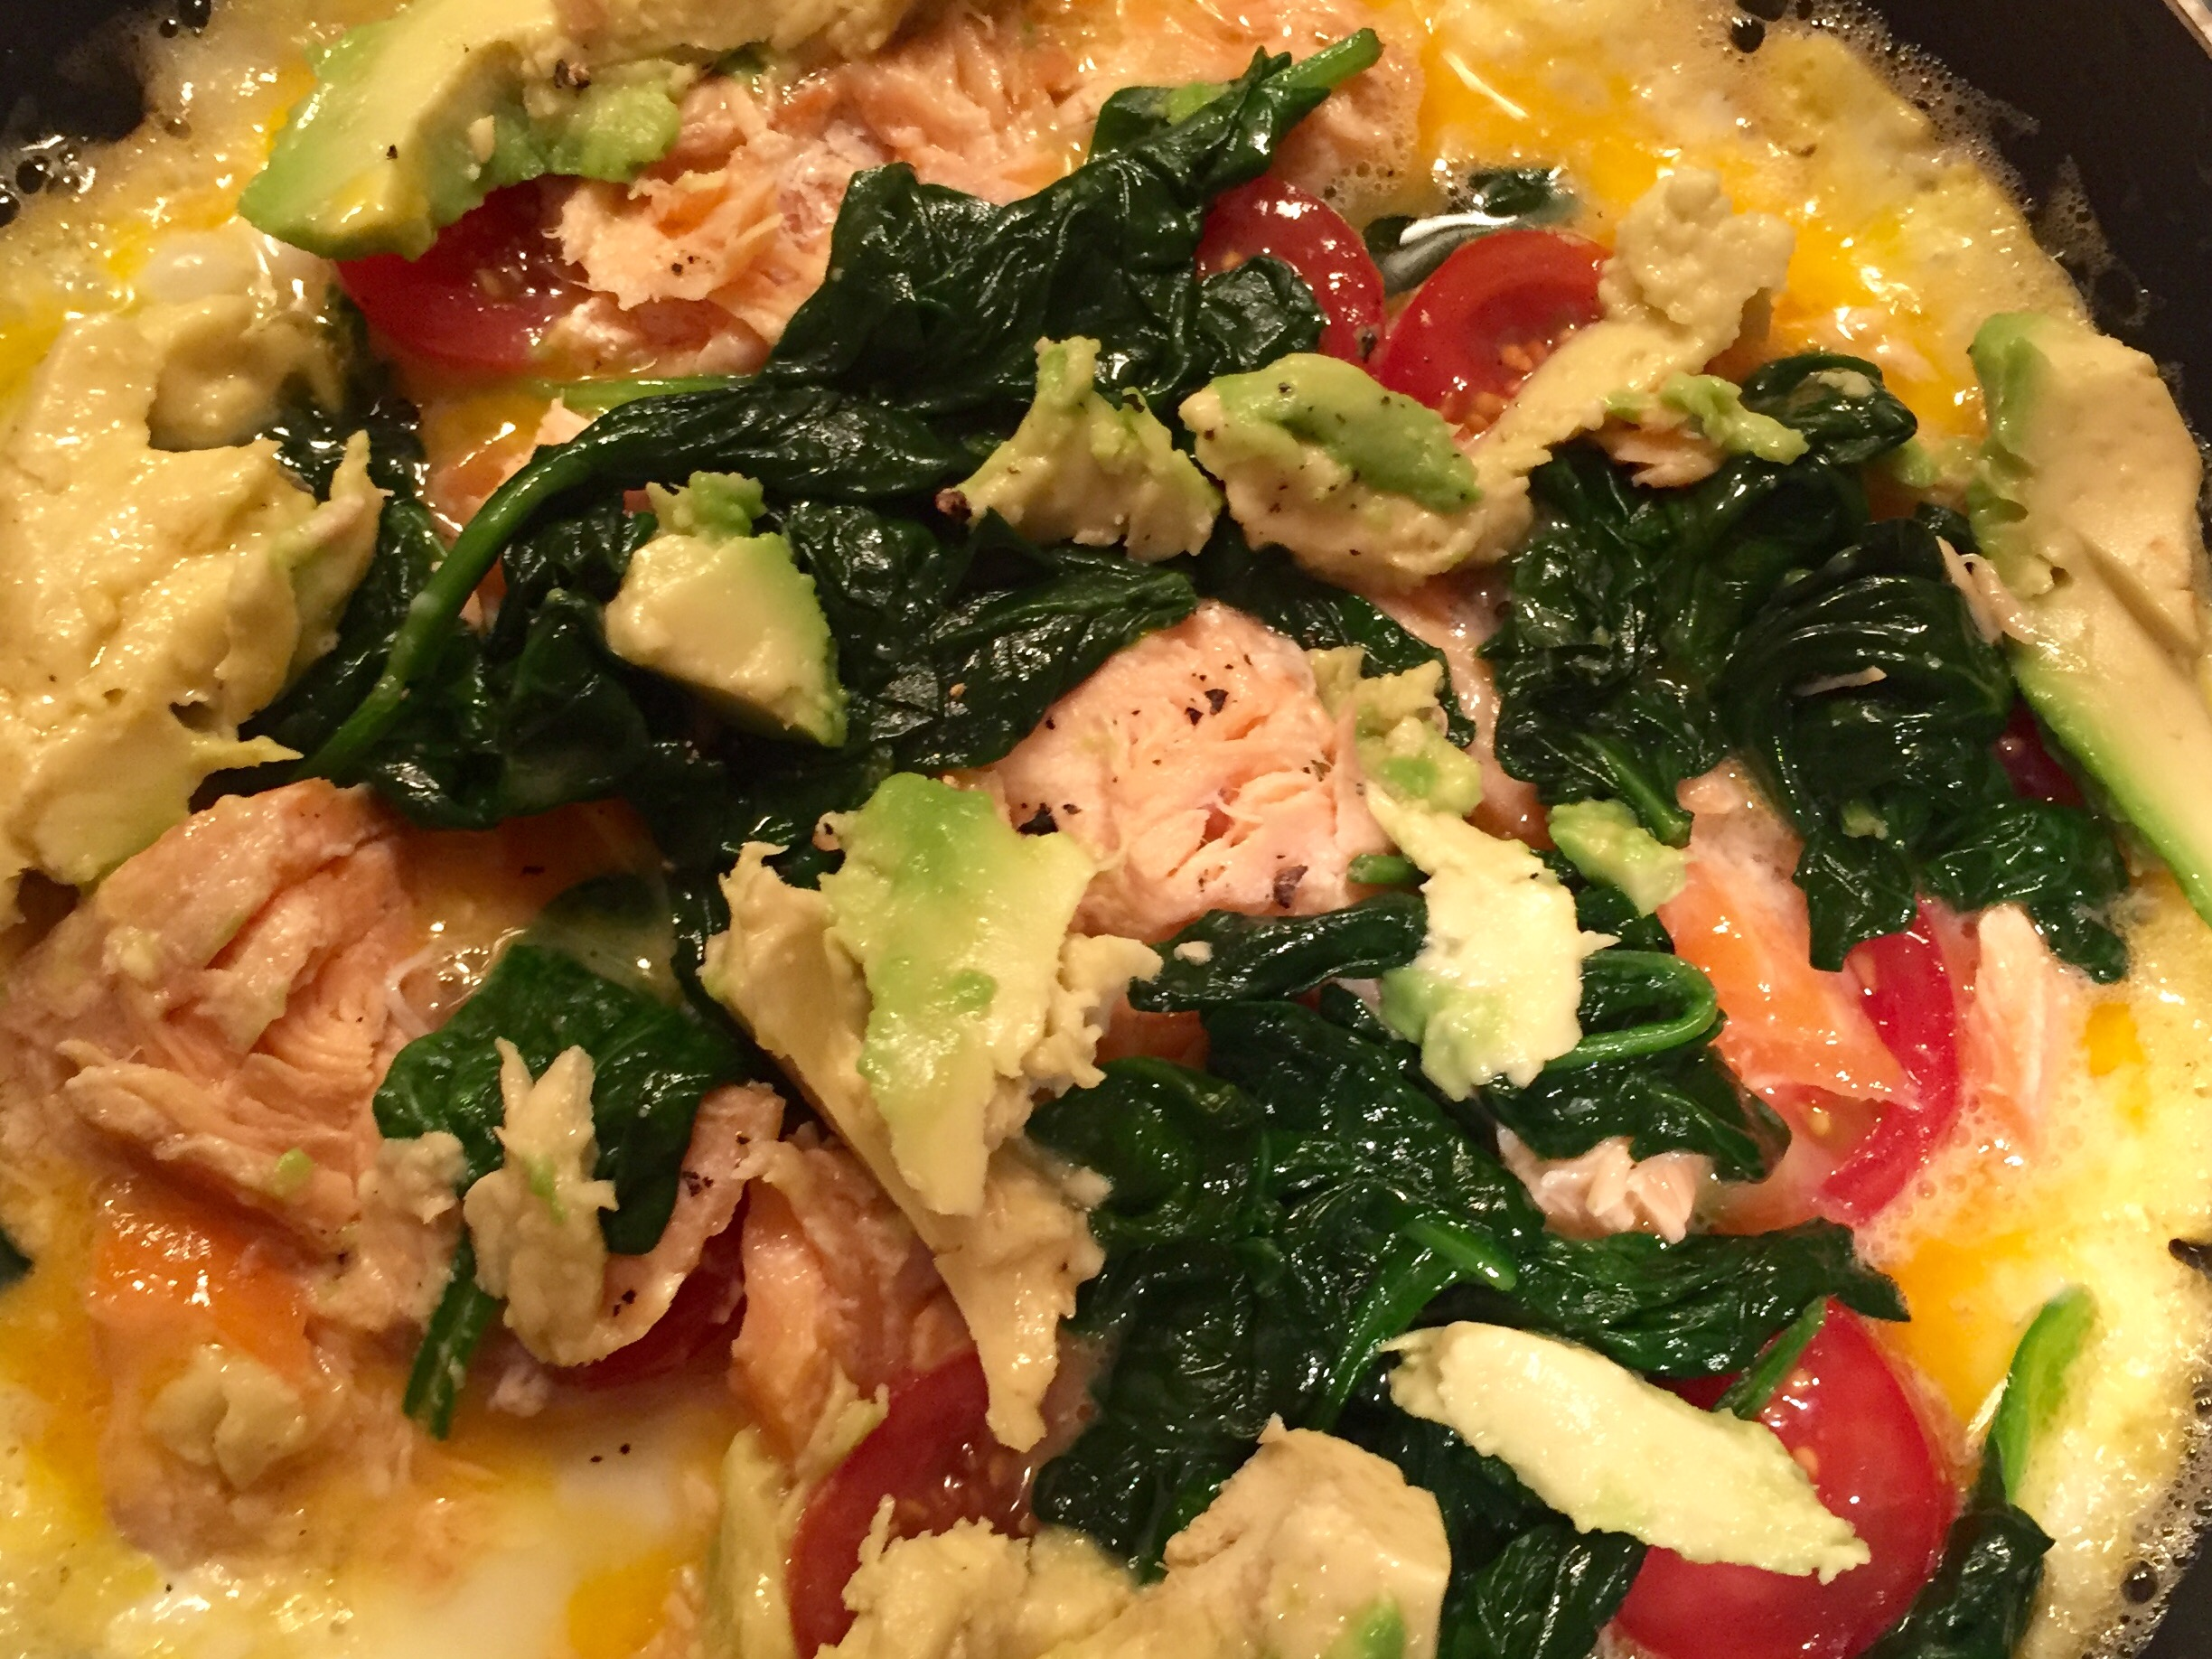 SALMON & SPINACH OMELETTE